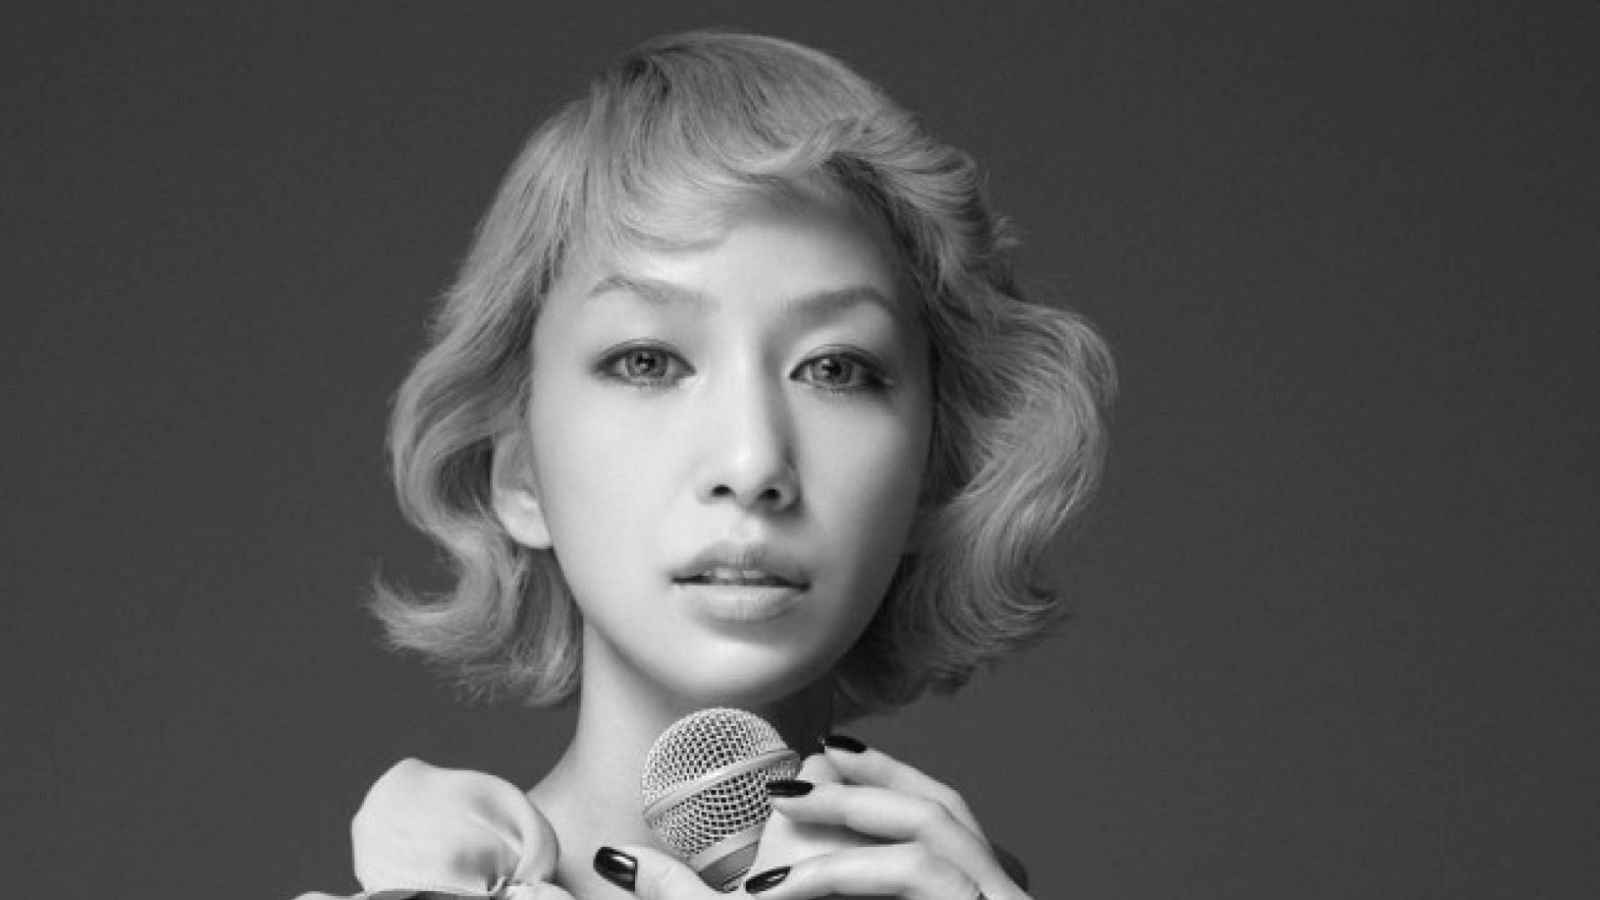 Mika Nakashima © Sony Music Entertainment (Japan) Inc.